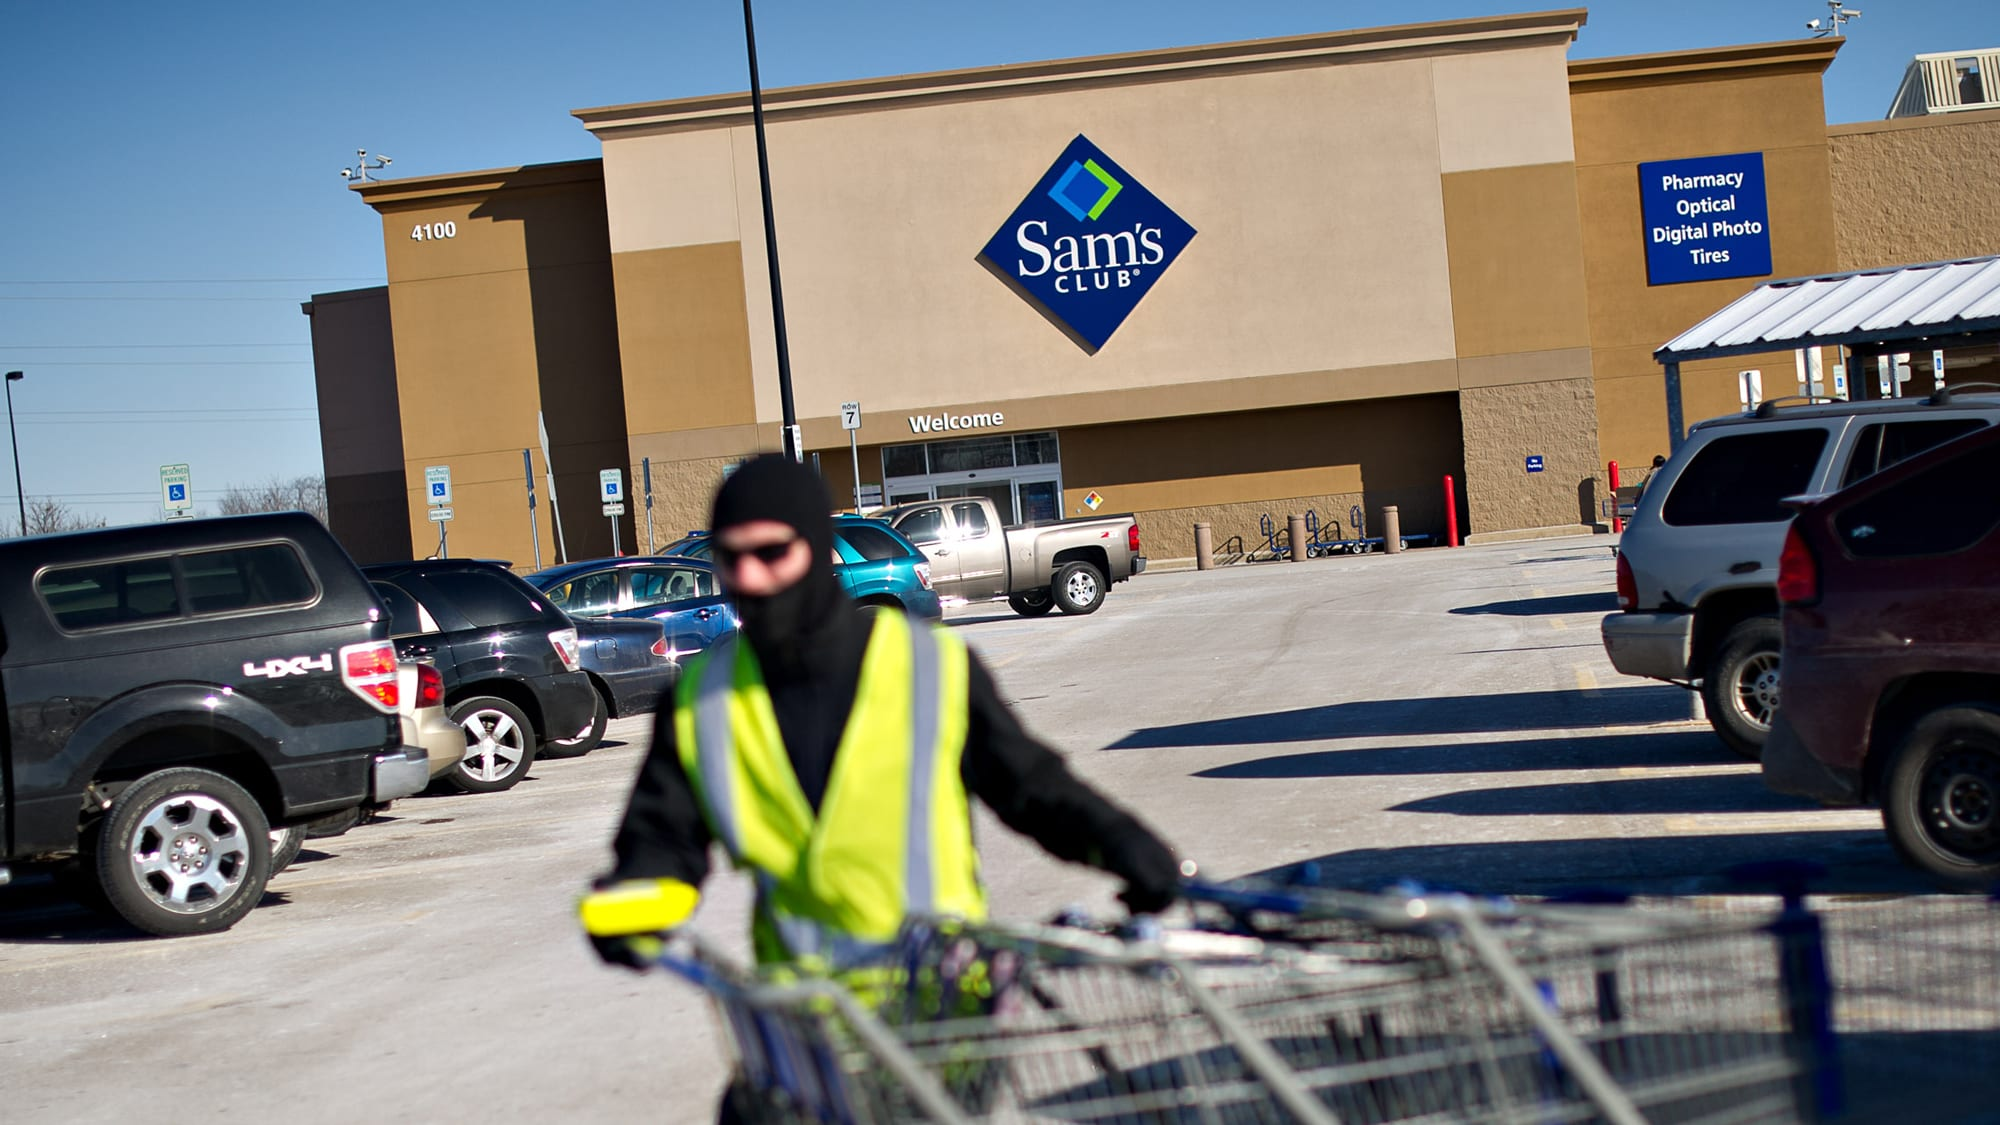 Sam's Club adds petite packs for smaller holiday gatherings